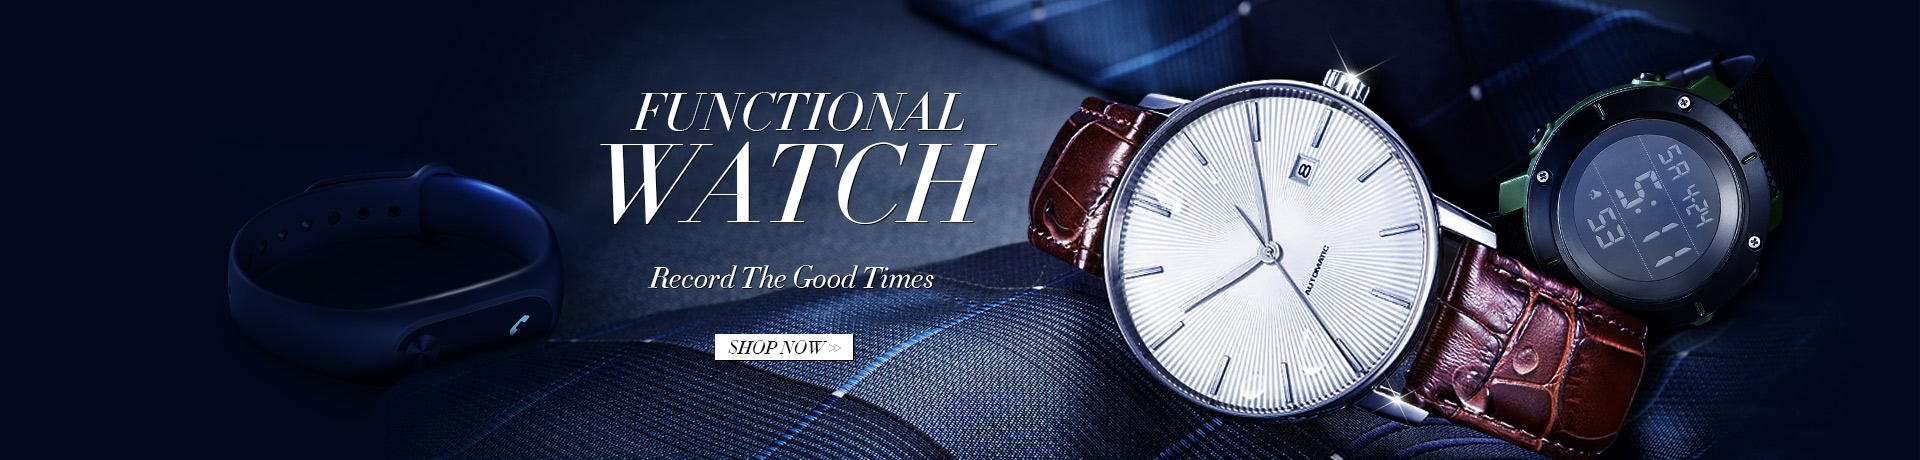 Functional Watch